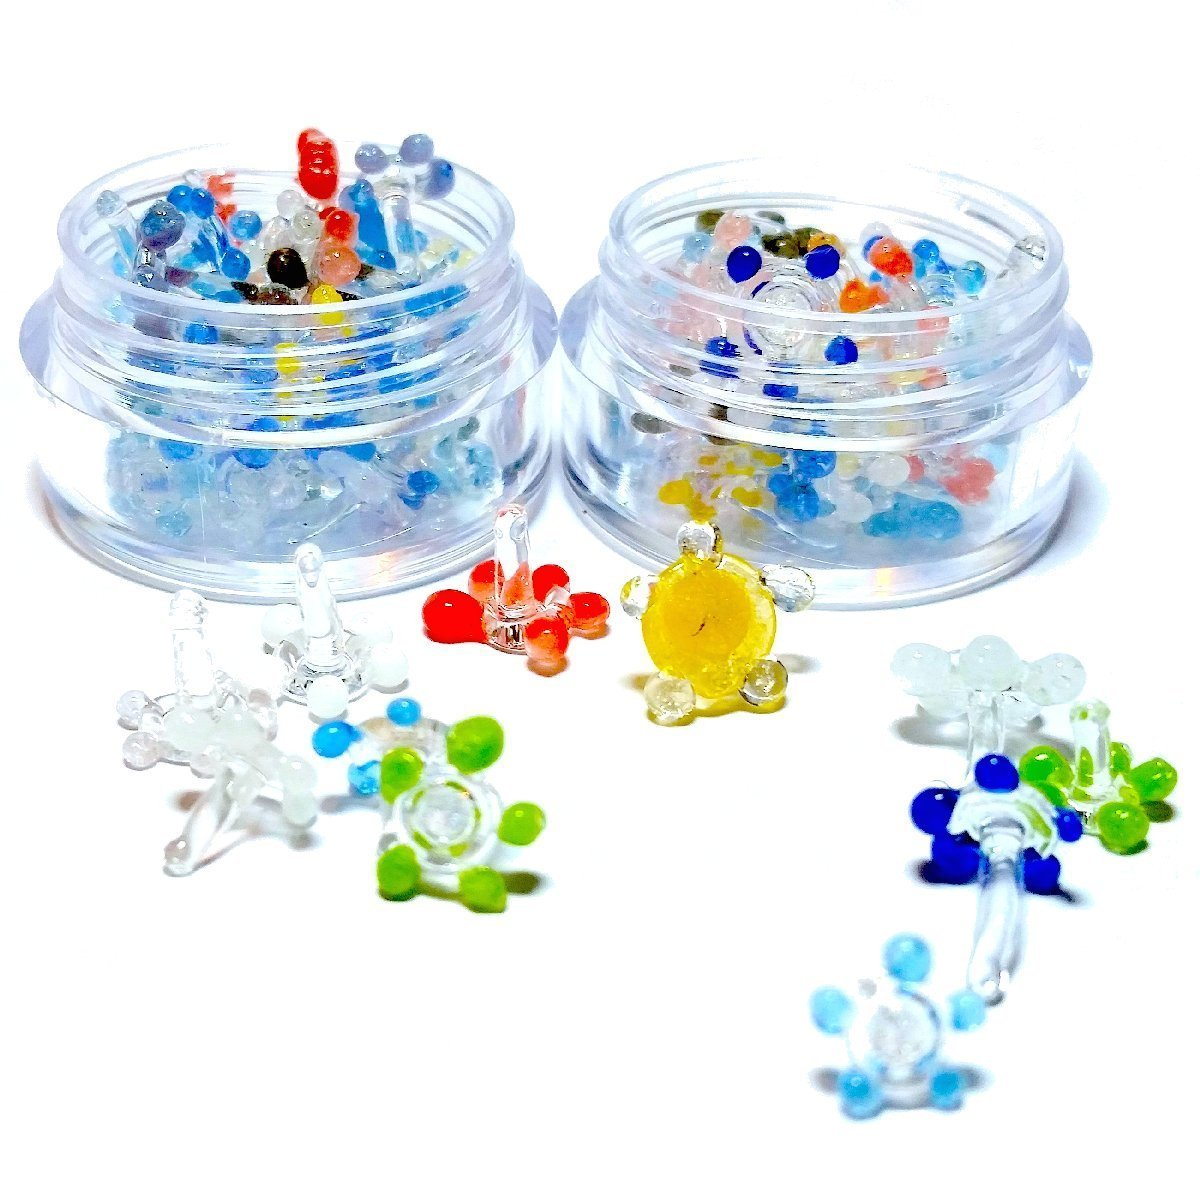 Amazon 20 glass flowerdaisy screens 20 pcs w small amazon 20 glass flowerdaisy screens 20 pcs w small container health personal care dhlflorist Images